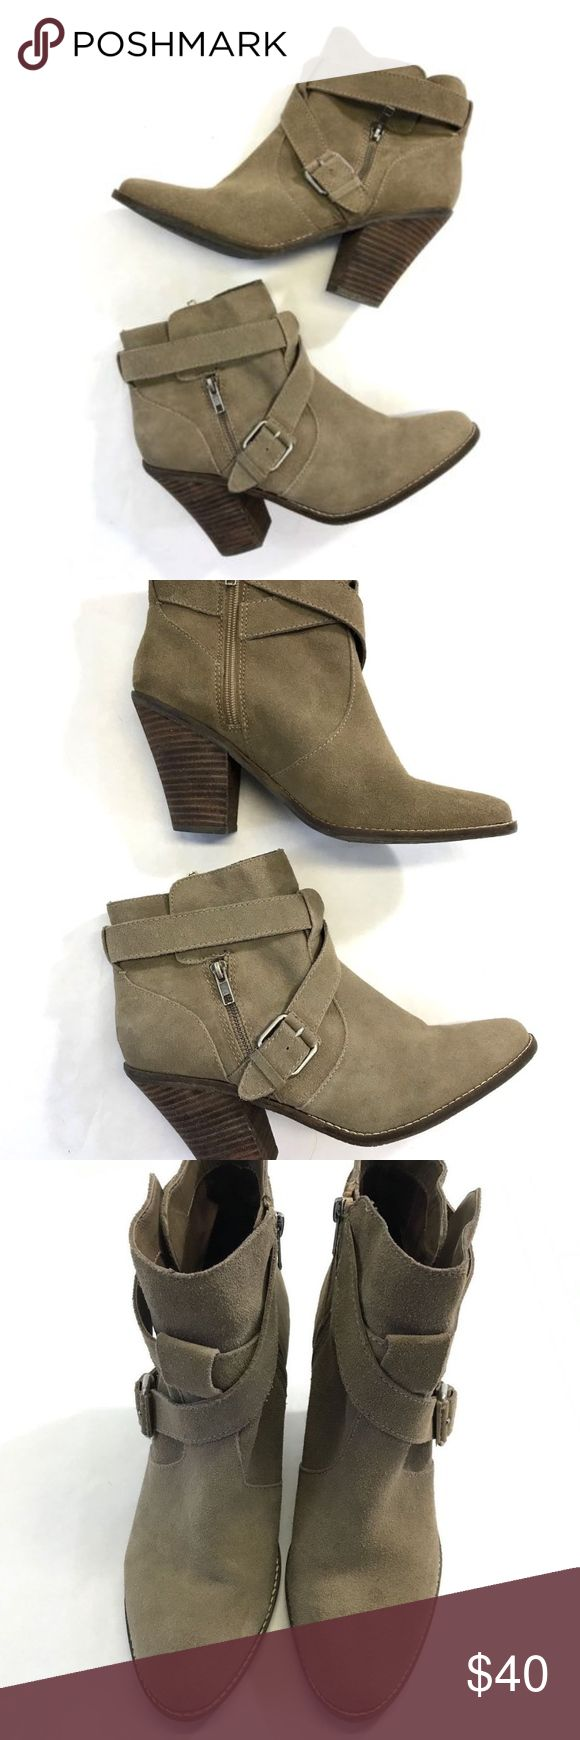 Dolce Vita DV Ankle Boots Taupe Suede Cuban Heel Dolce Vita DV Womens Ankle Boots 11 Taupe Suede Booties Strappy Cuban Heel Dolce Vita Shoes Ankle Boots & Booties